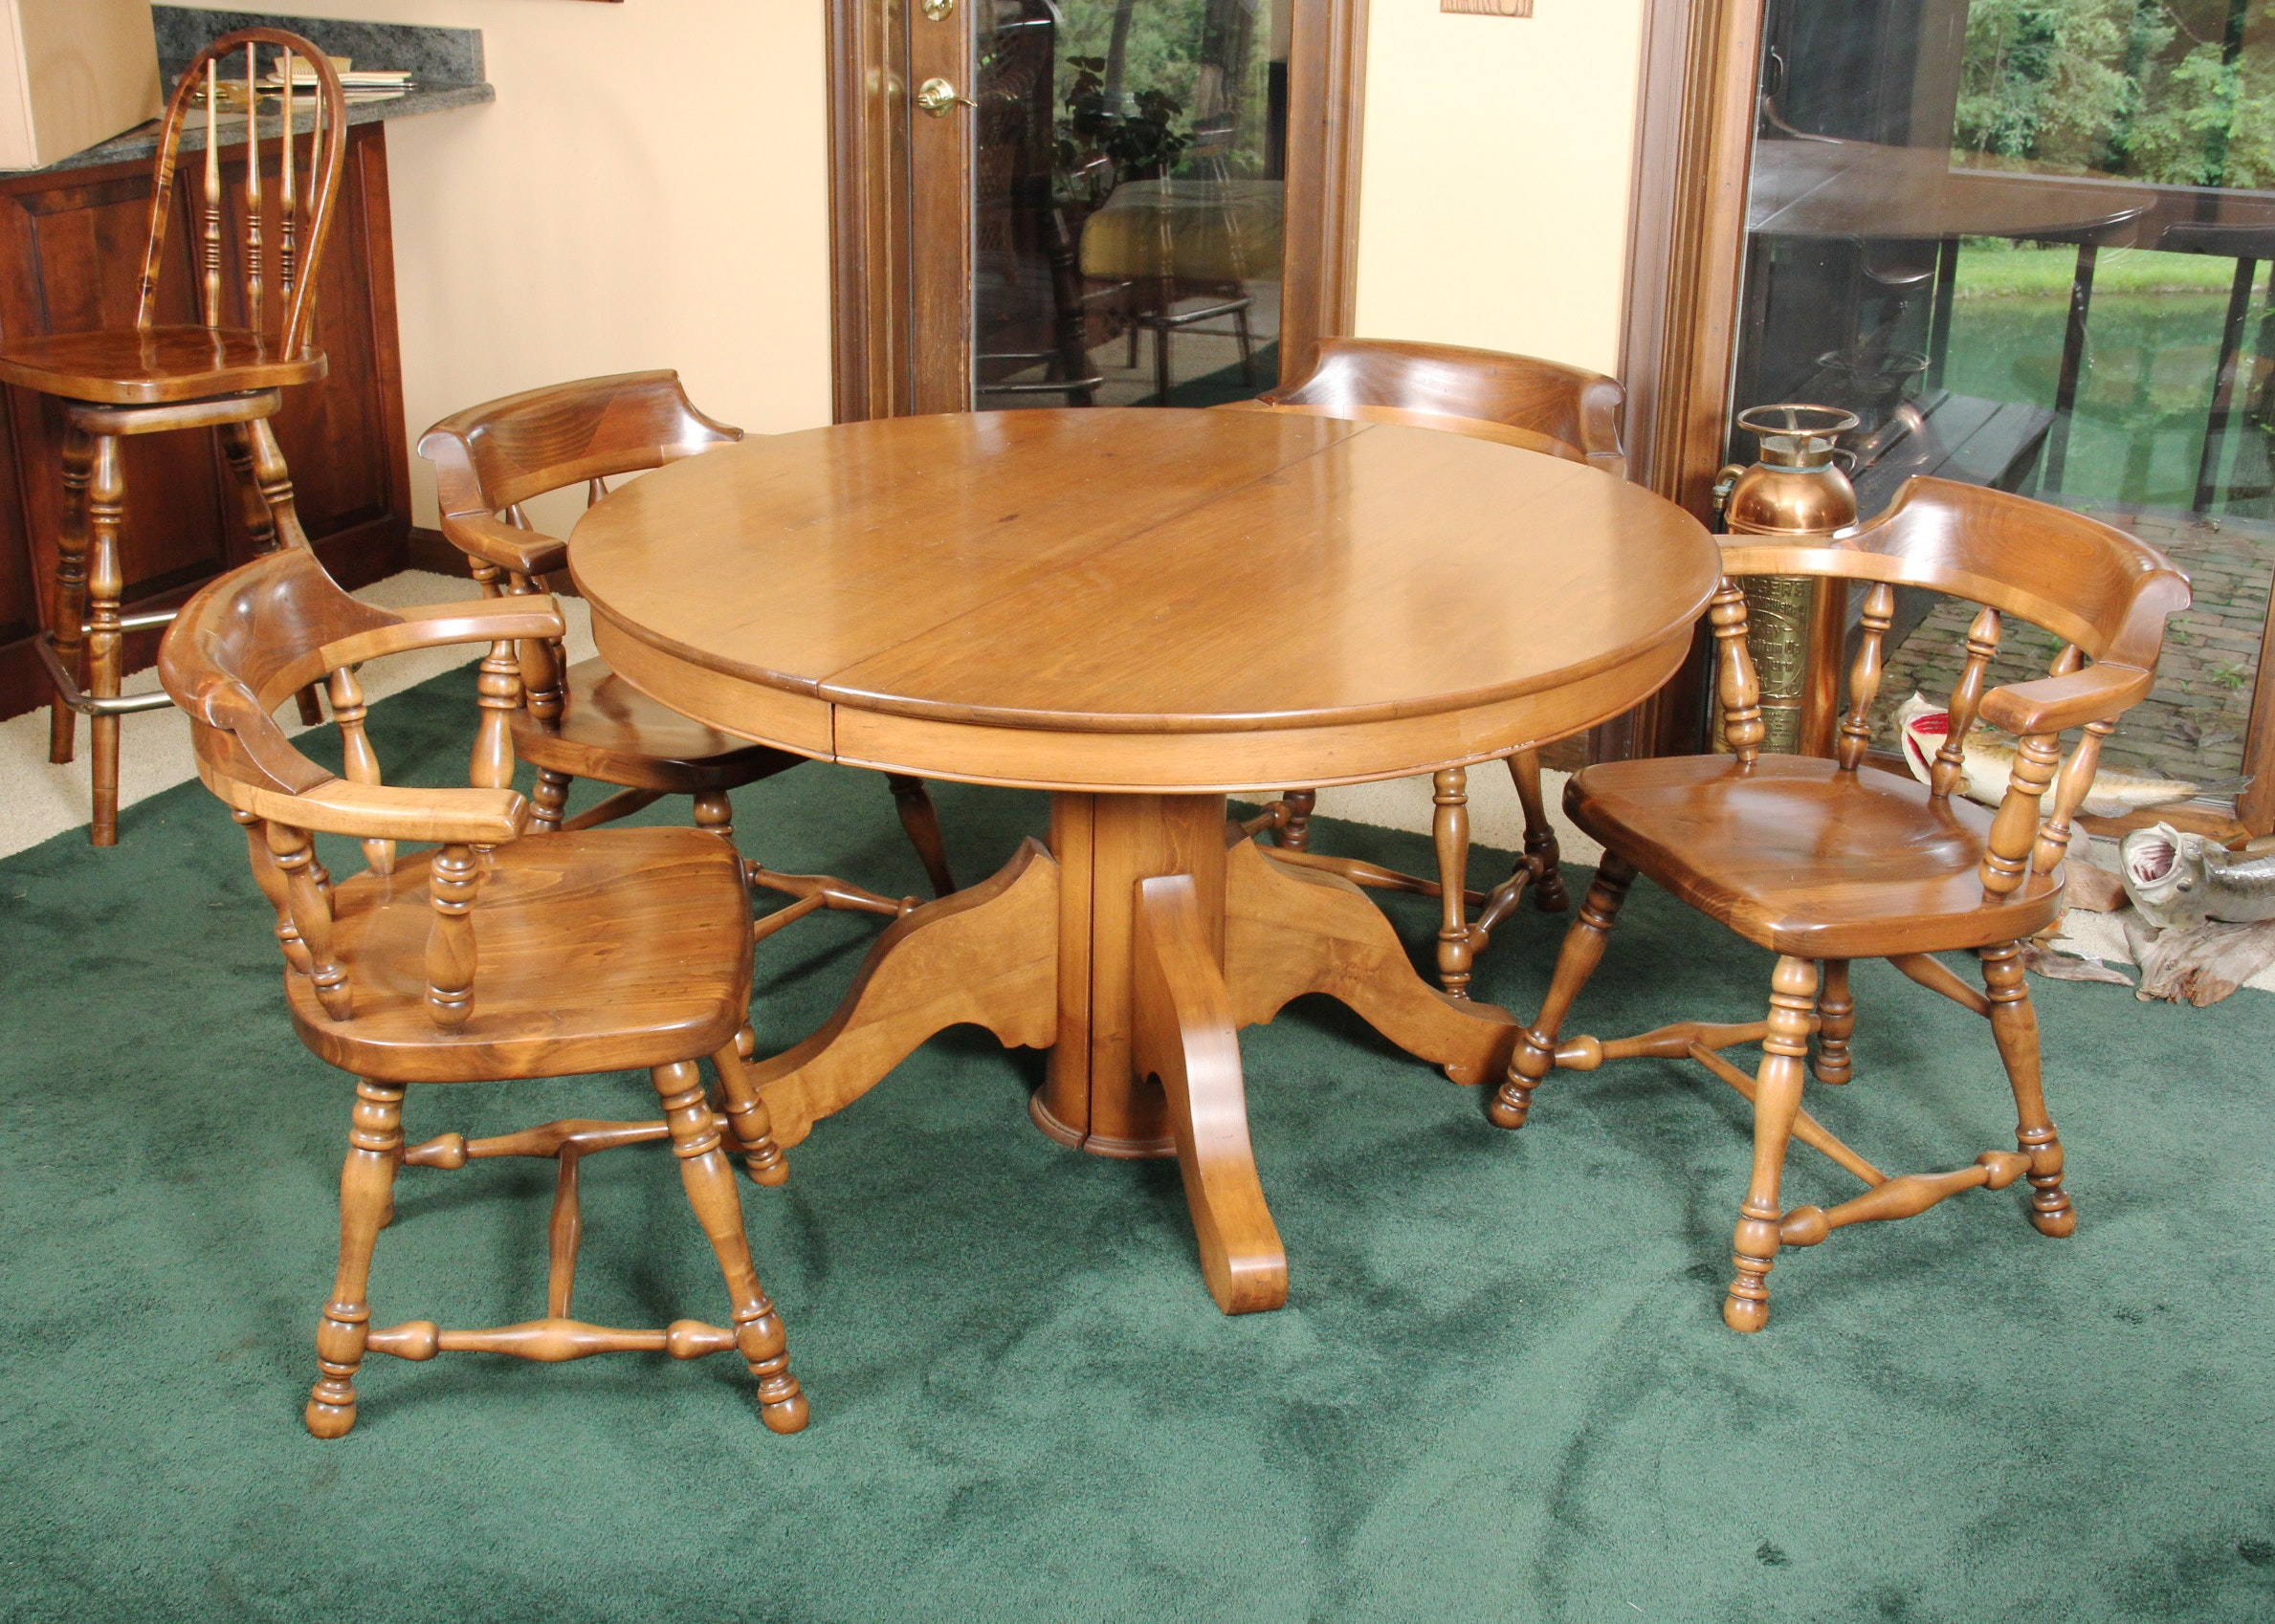 round maple dining table and chairs : ebth